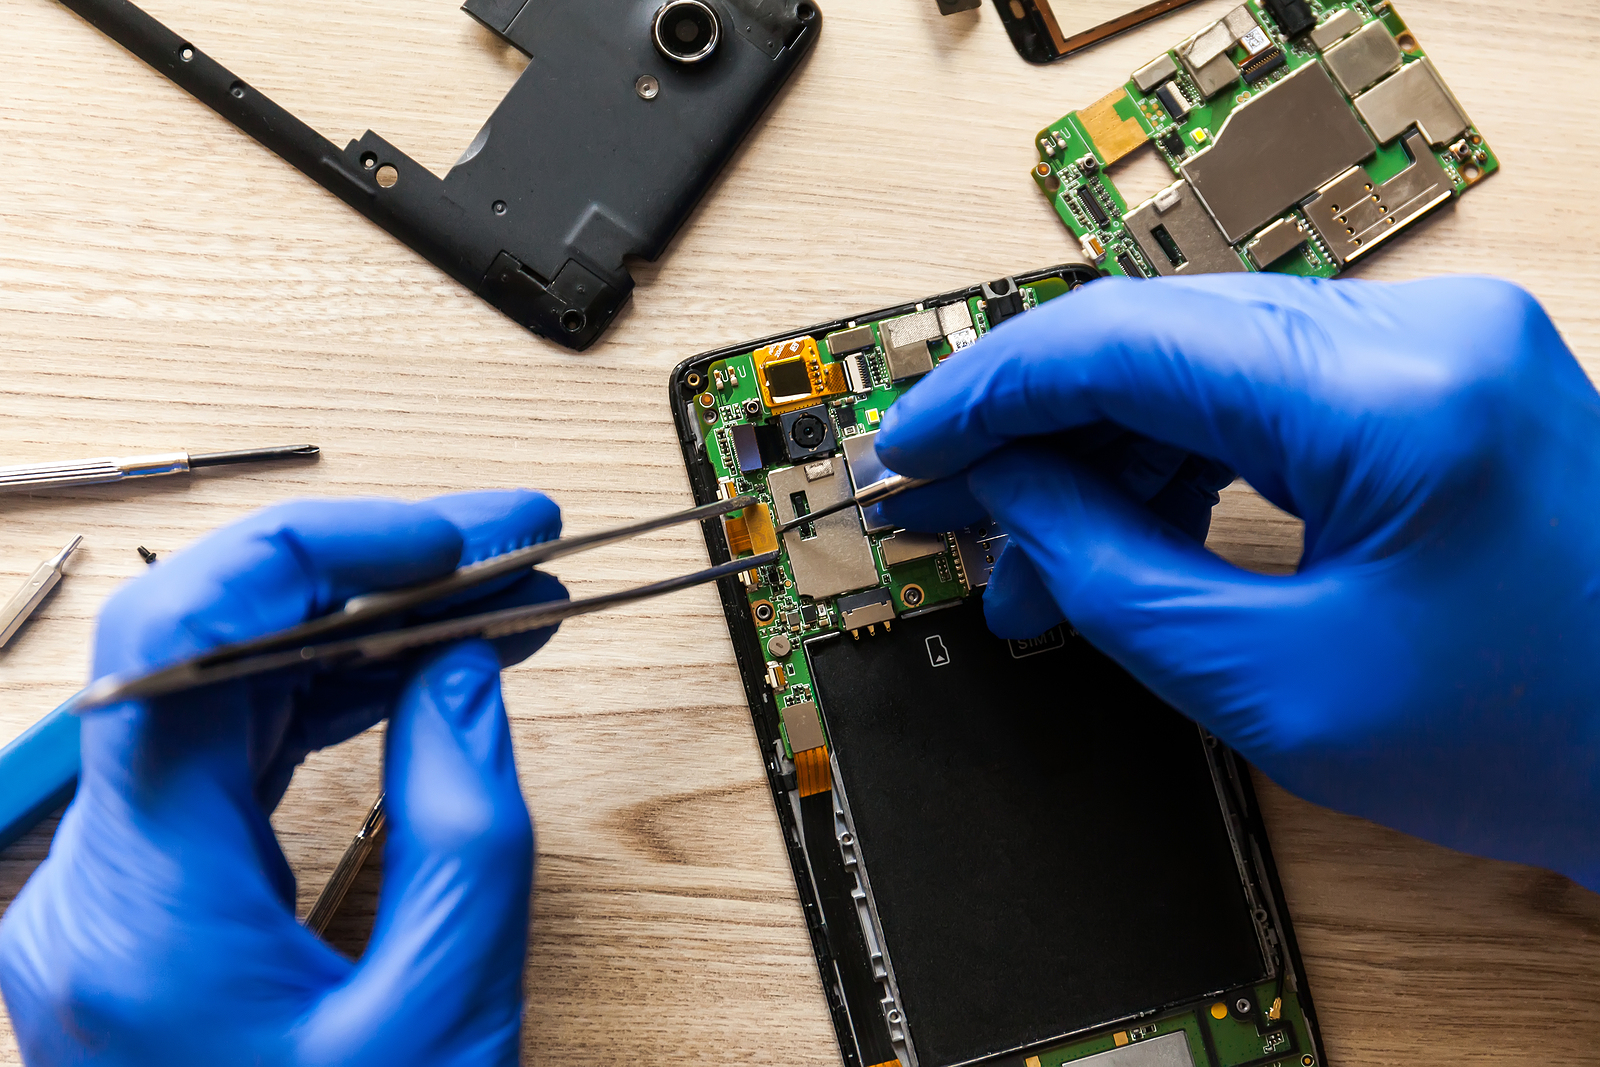 Repair or Replace: Extending the Life of Your Device